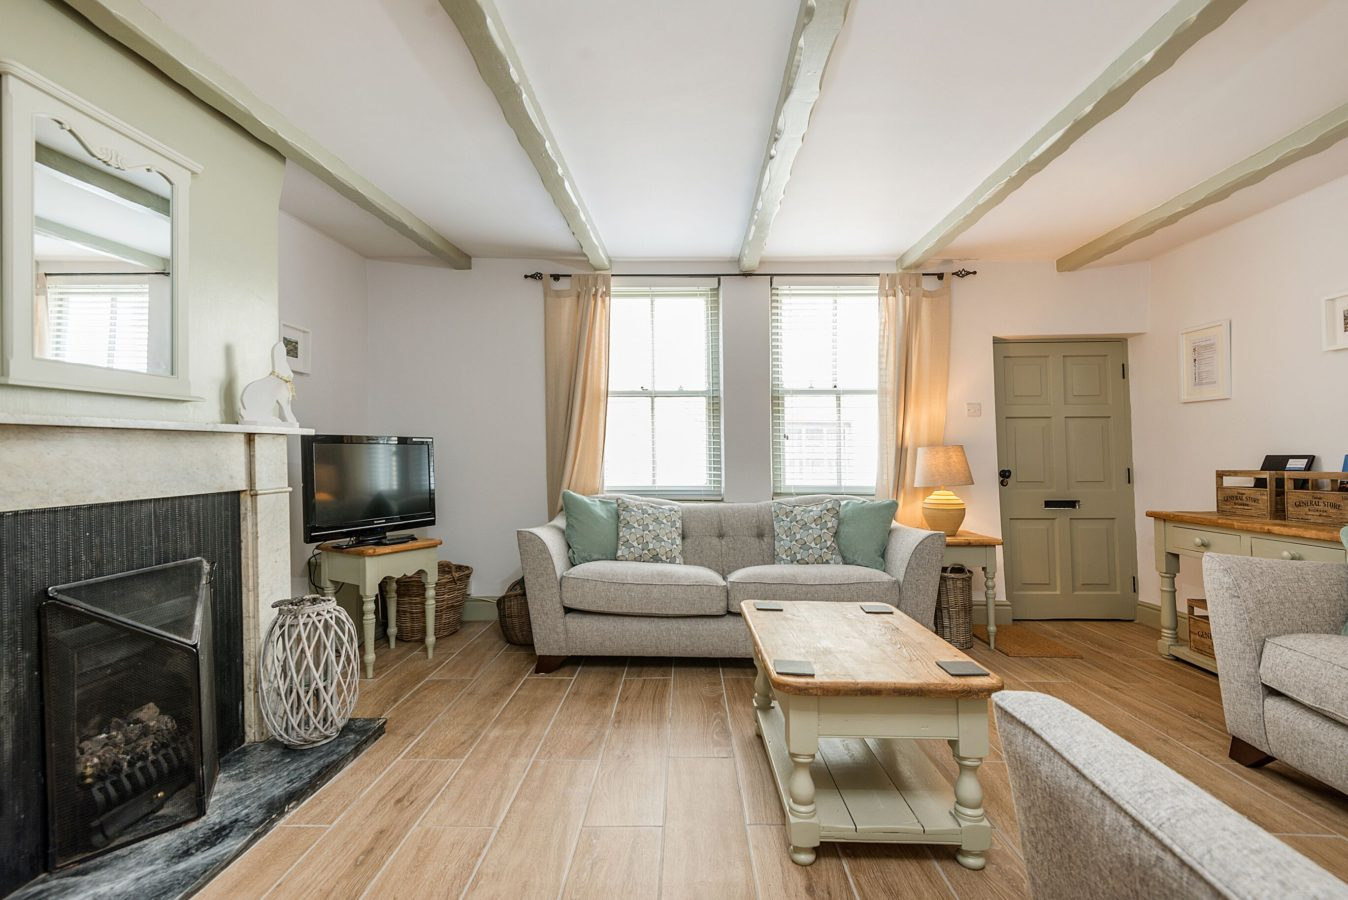 Whitby Holiday Cottage to let, Pet Friendly holiday cottage Whitby.